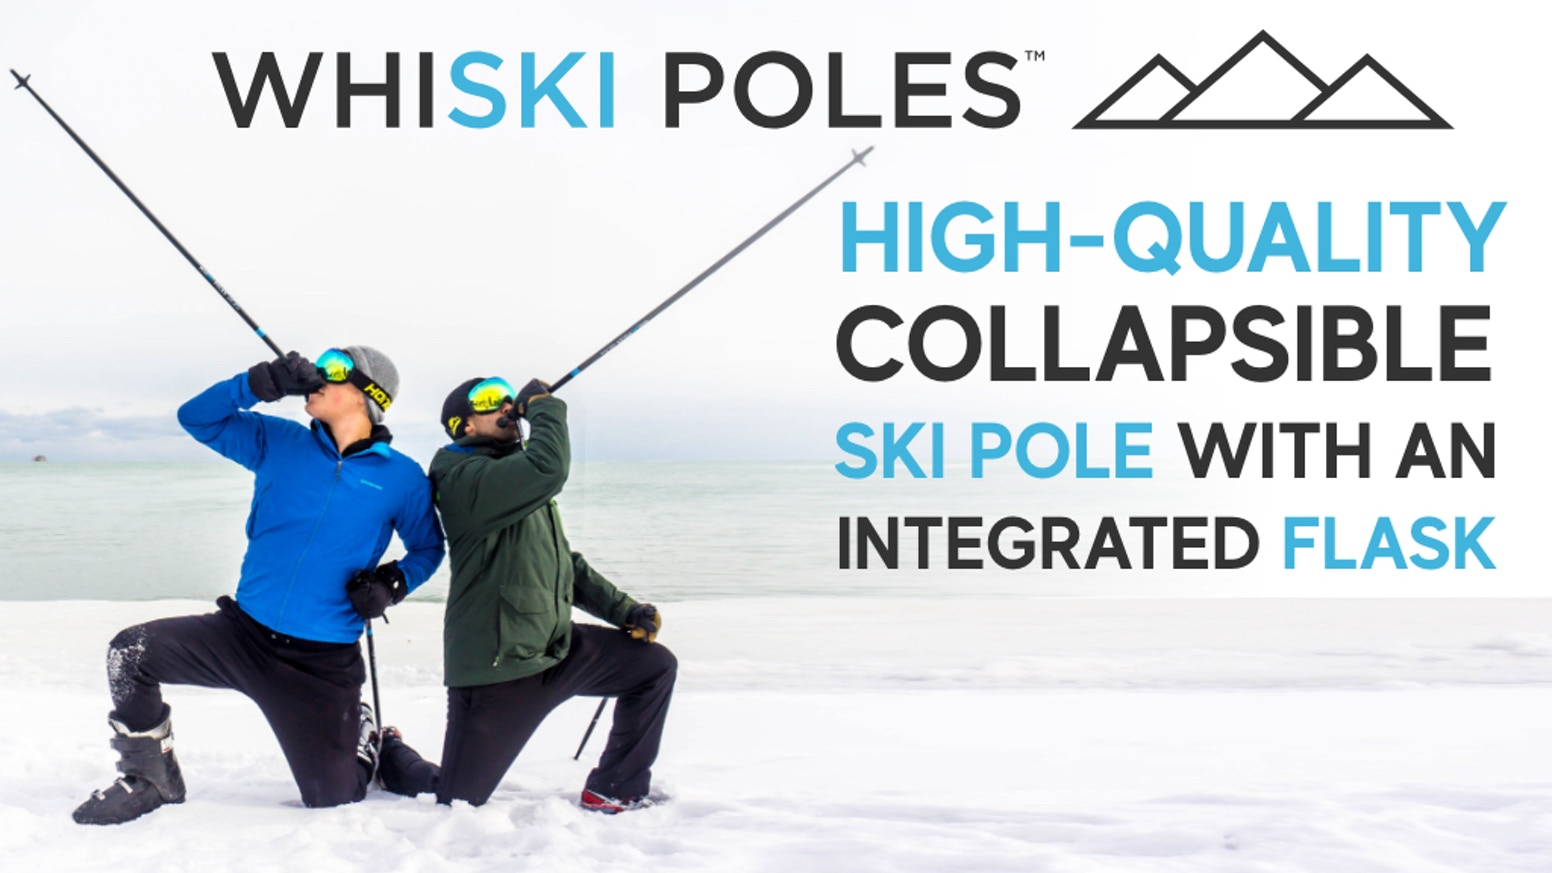 High-quality collapsible performance ski poles with an integrated flask + stash handles, perfect for a post-ski drink or après ski life